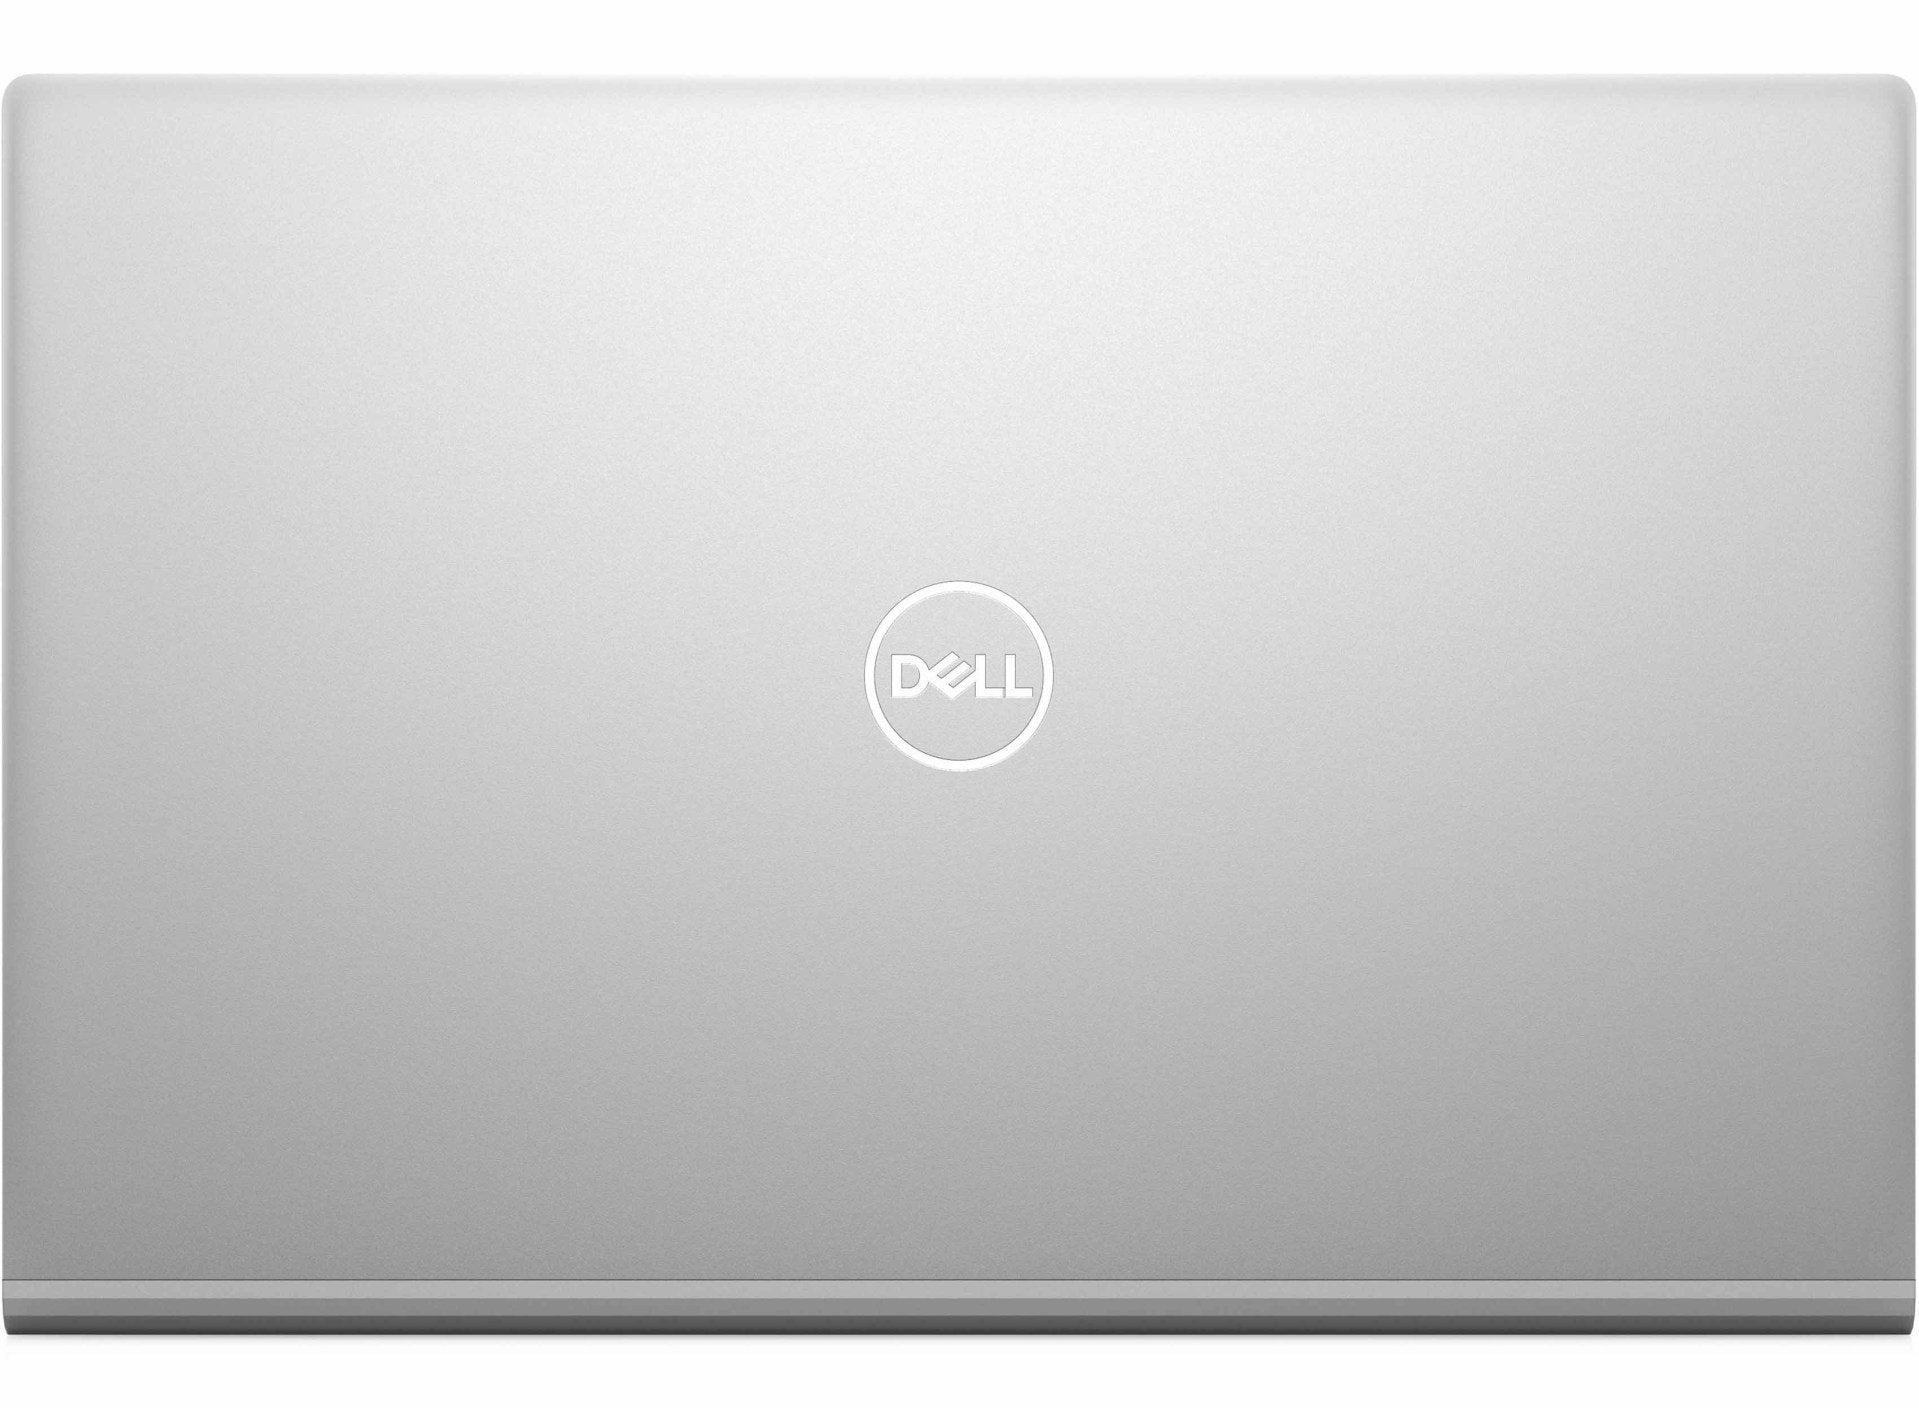 2021 Dell Inspiron 15 5502 Laptop - 15